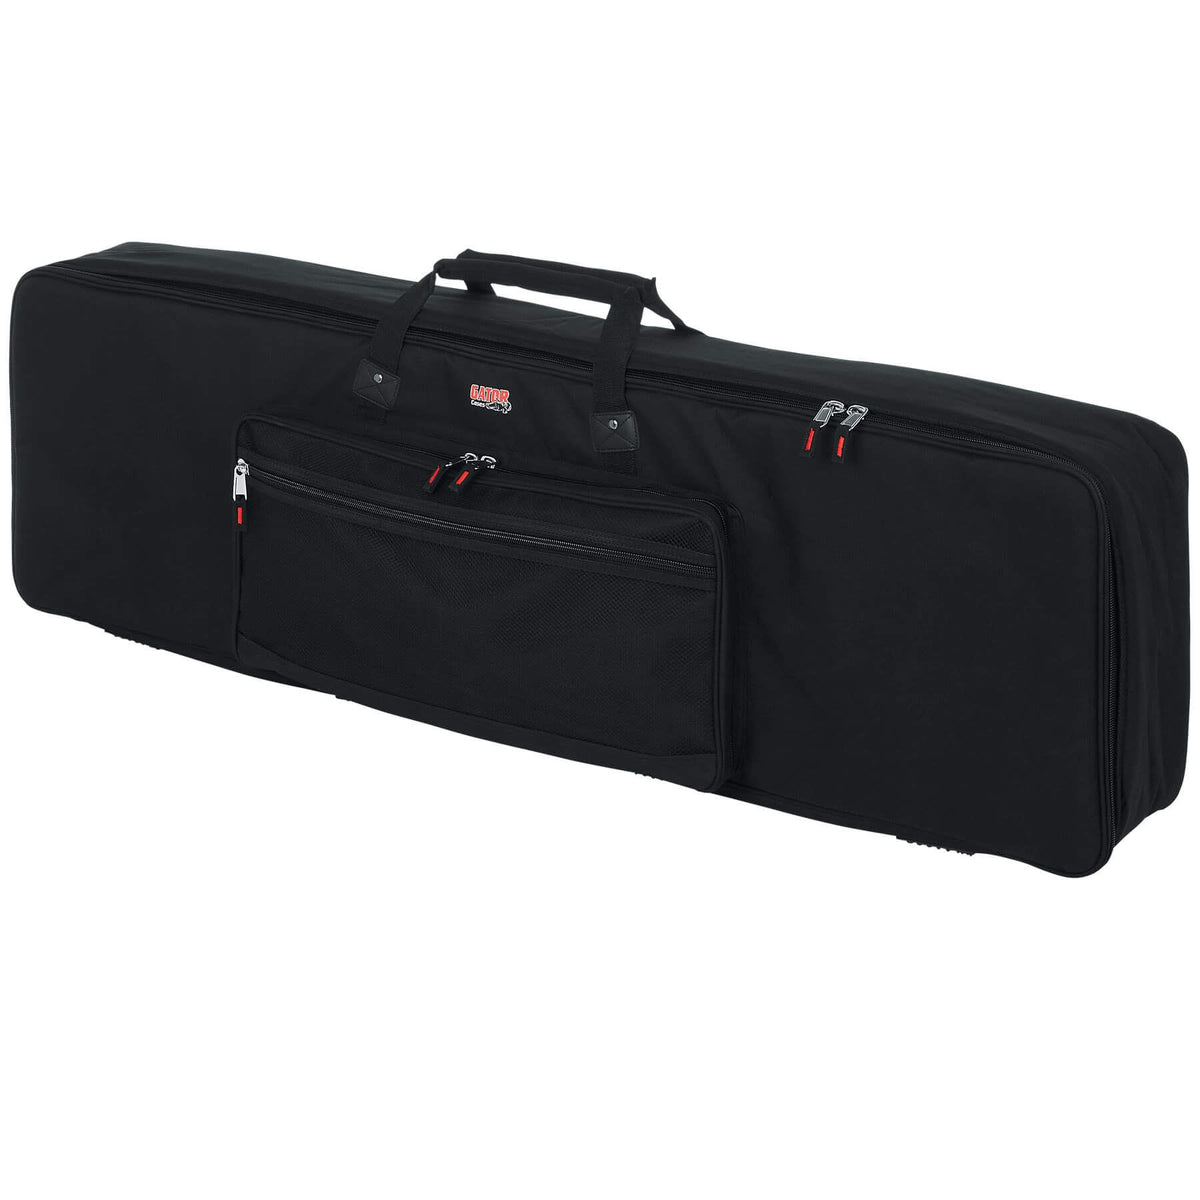 Gator Cases Keyboard Slim Gig Bag for Korg S170s, SP170, SP-200, SP-300